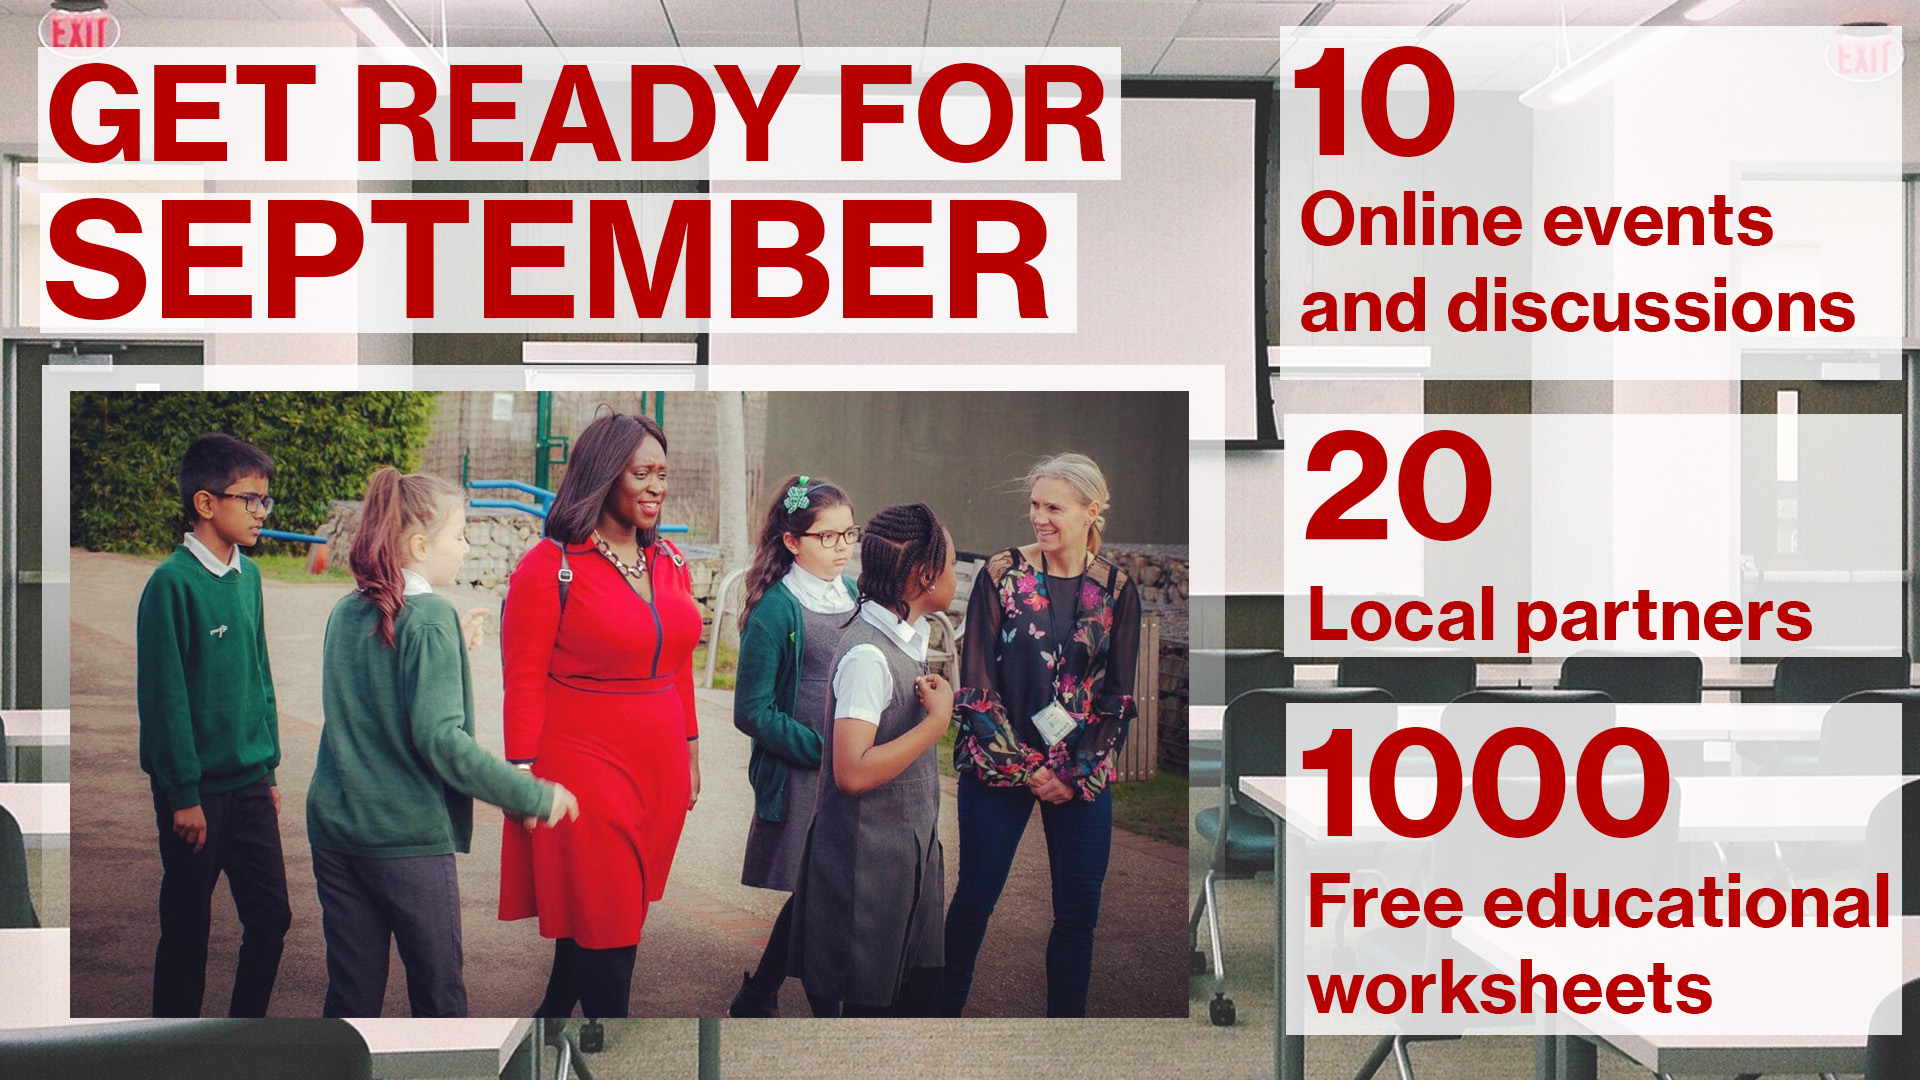 Details of get ready for september success